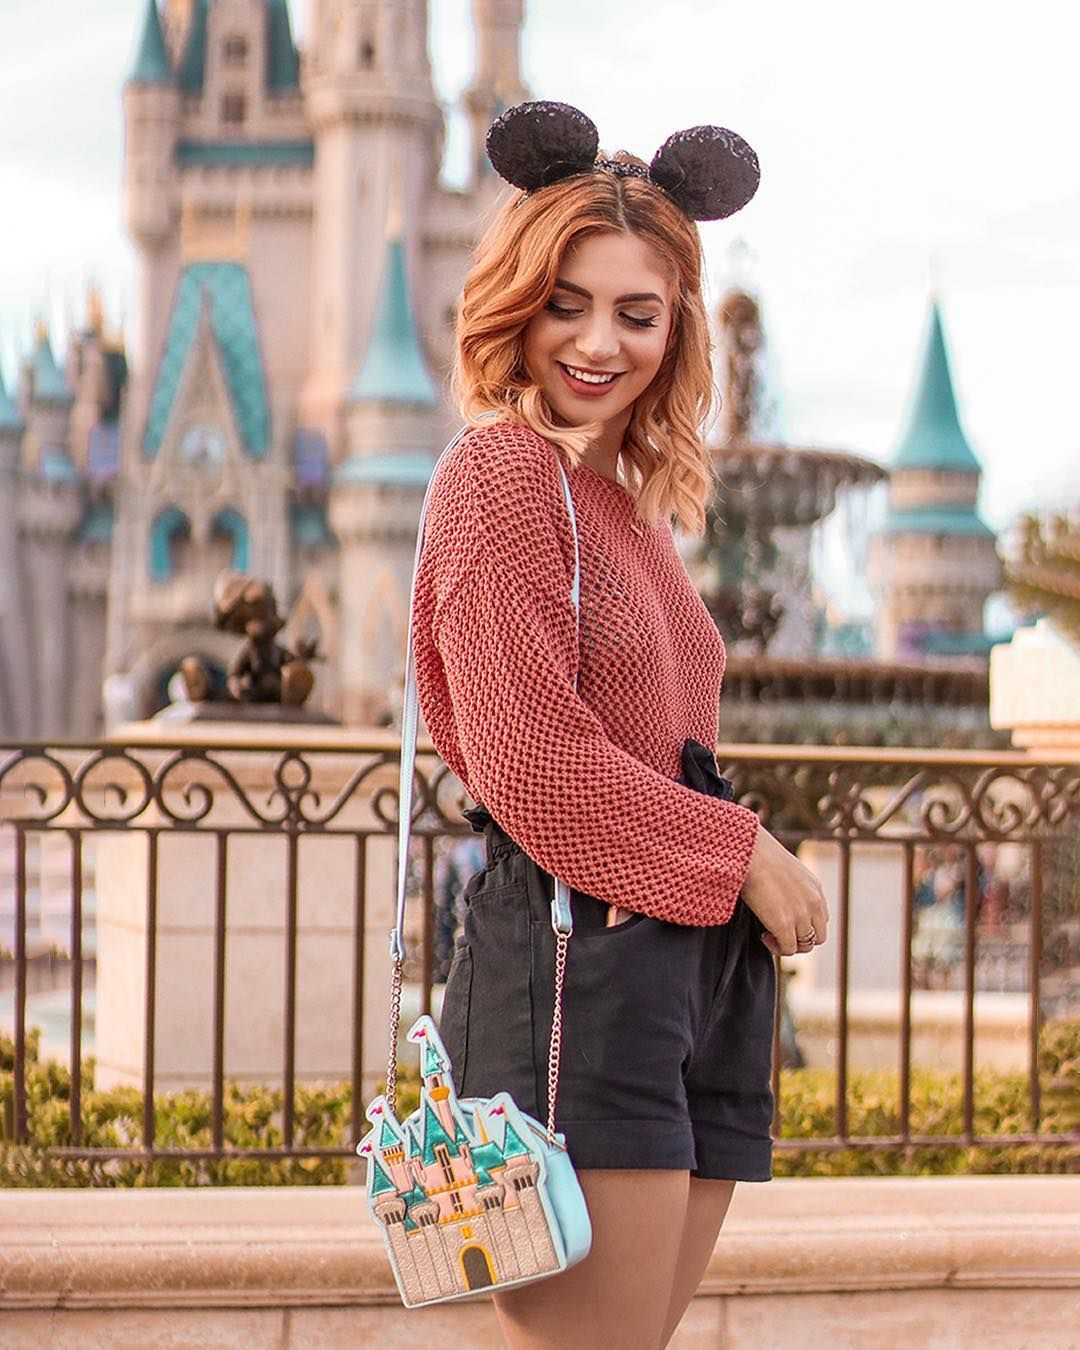 Raven Daria On Instagram When This Purse Came Out In Disneyland I Freaked Out My Sweet Boyf Disney Outfits Women Disney Inspired Outfits Disney Trip Outfits